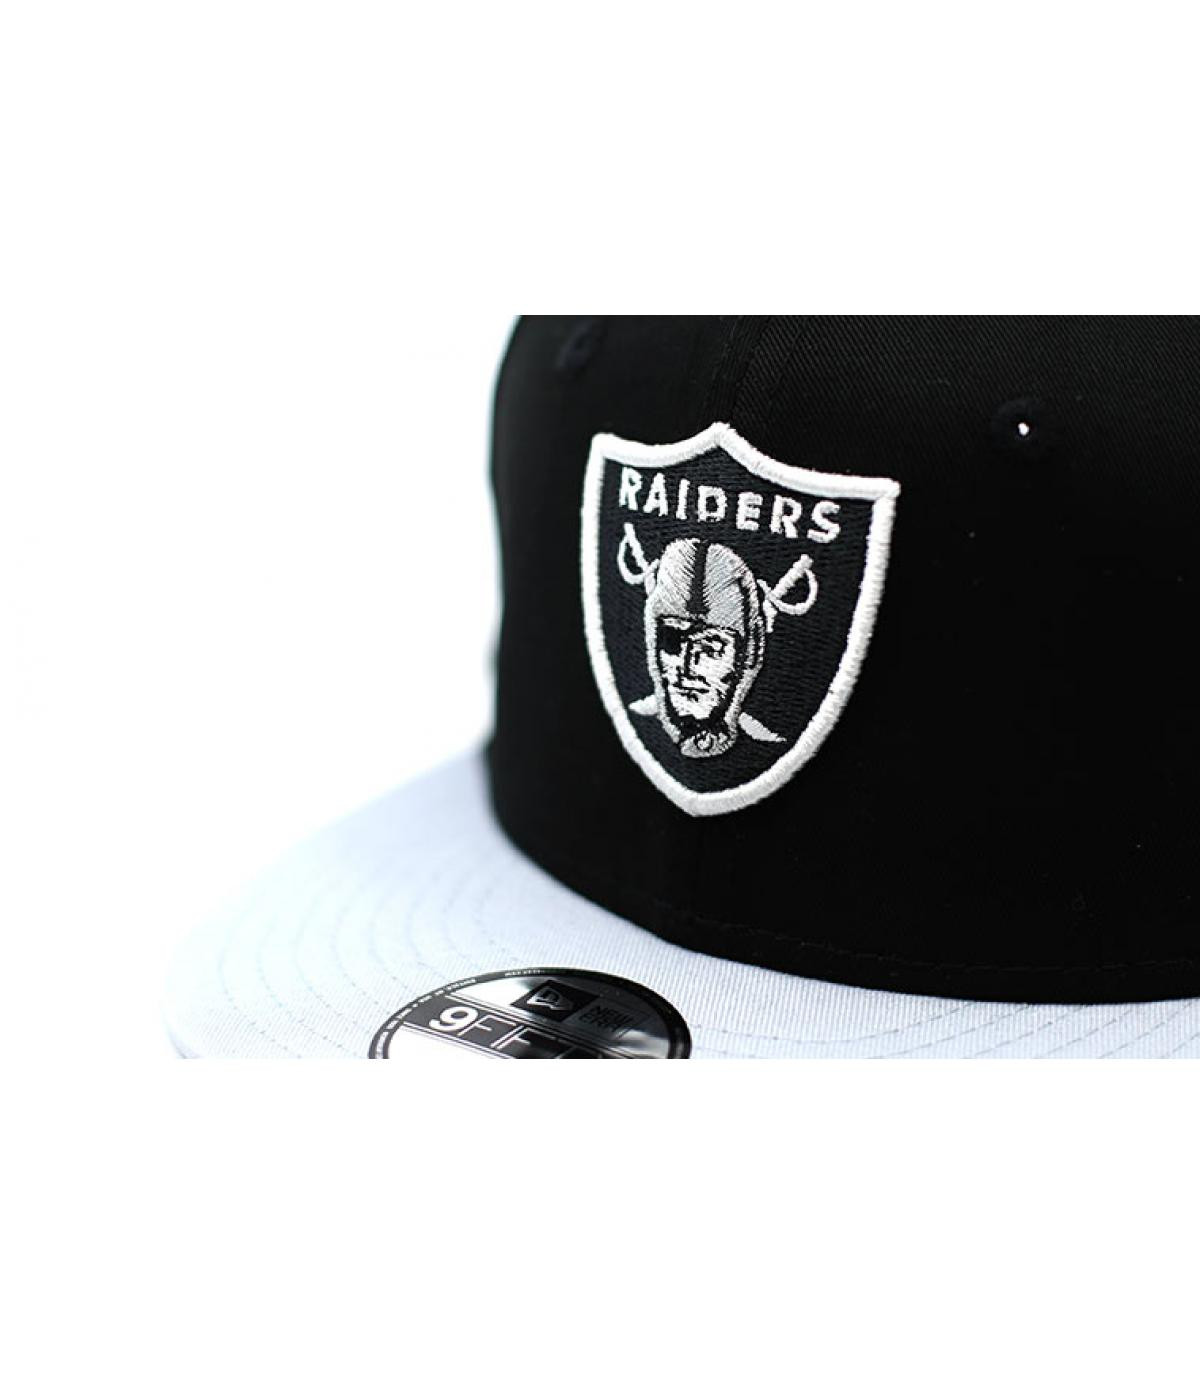 Détails Snapback Contrast Team Raiders 9Fifty - image 3